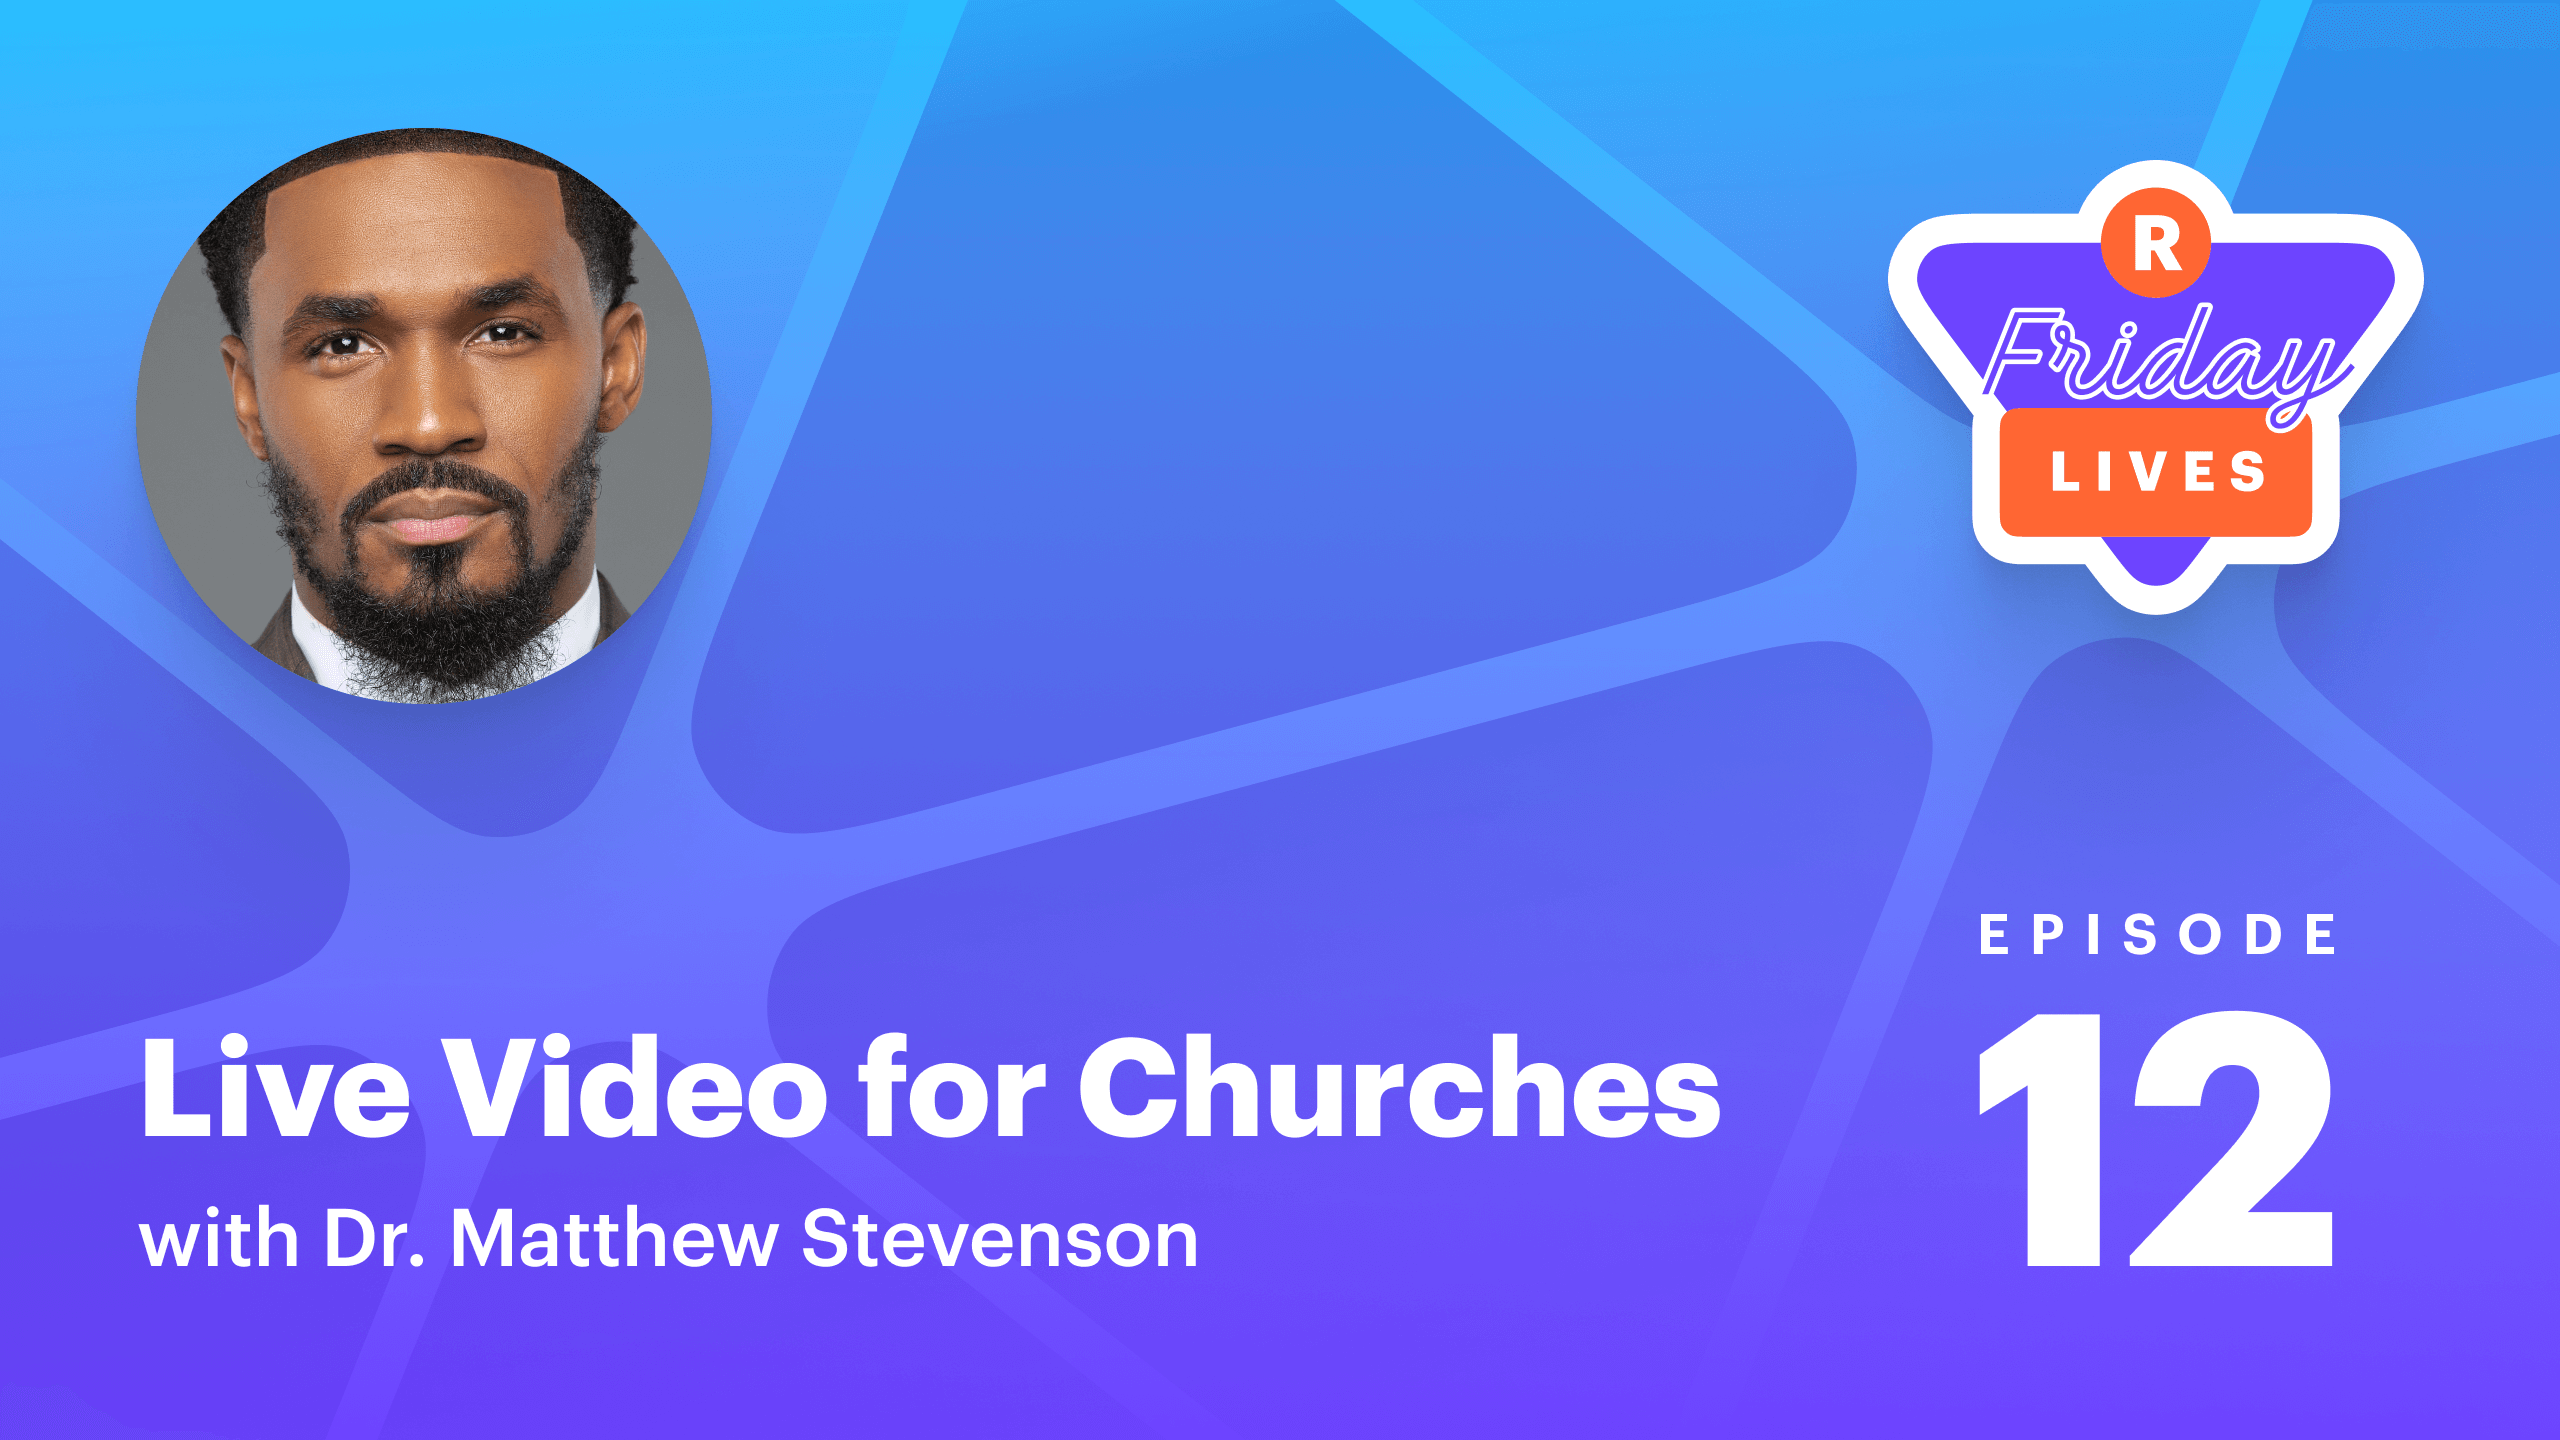 Live video for churches with Dr. Matthew L. Stevenson